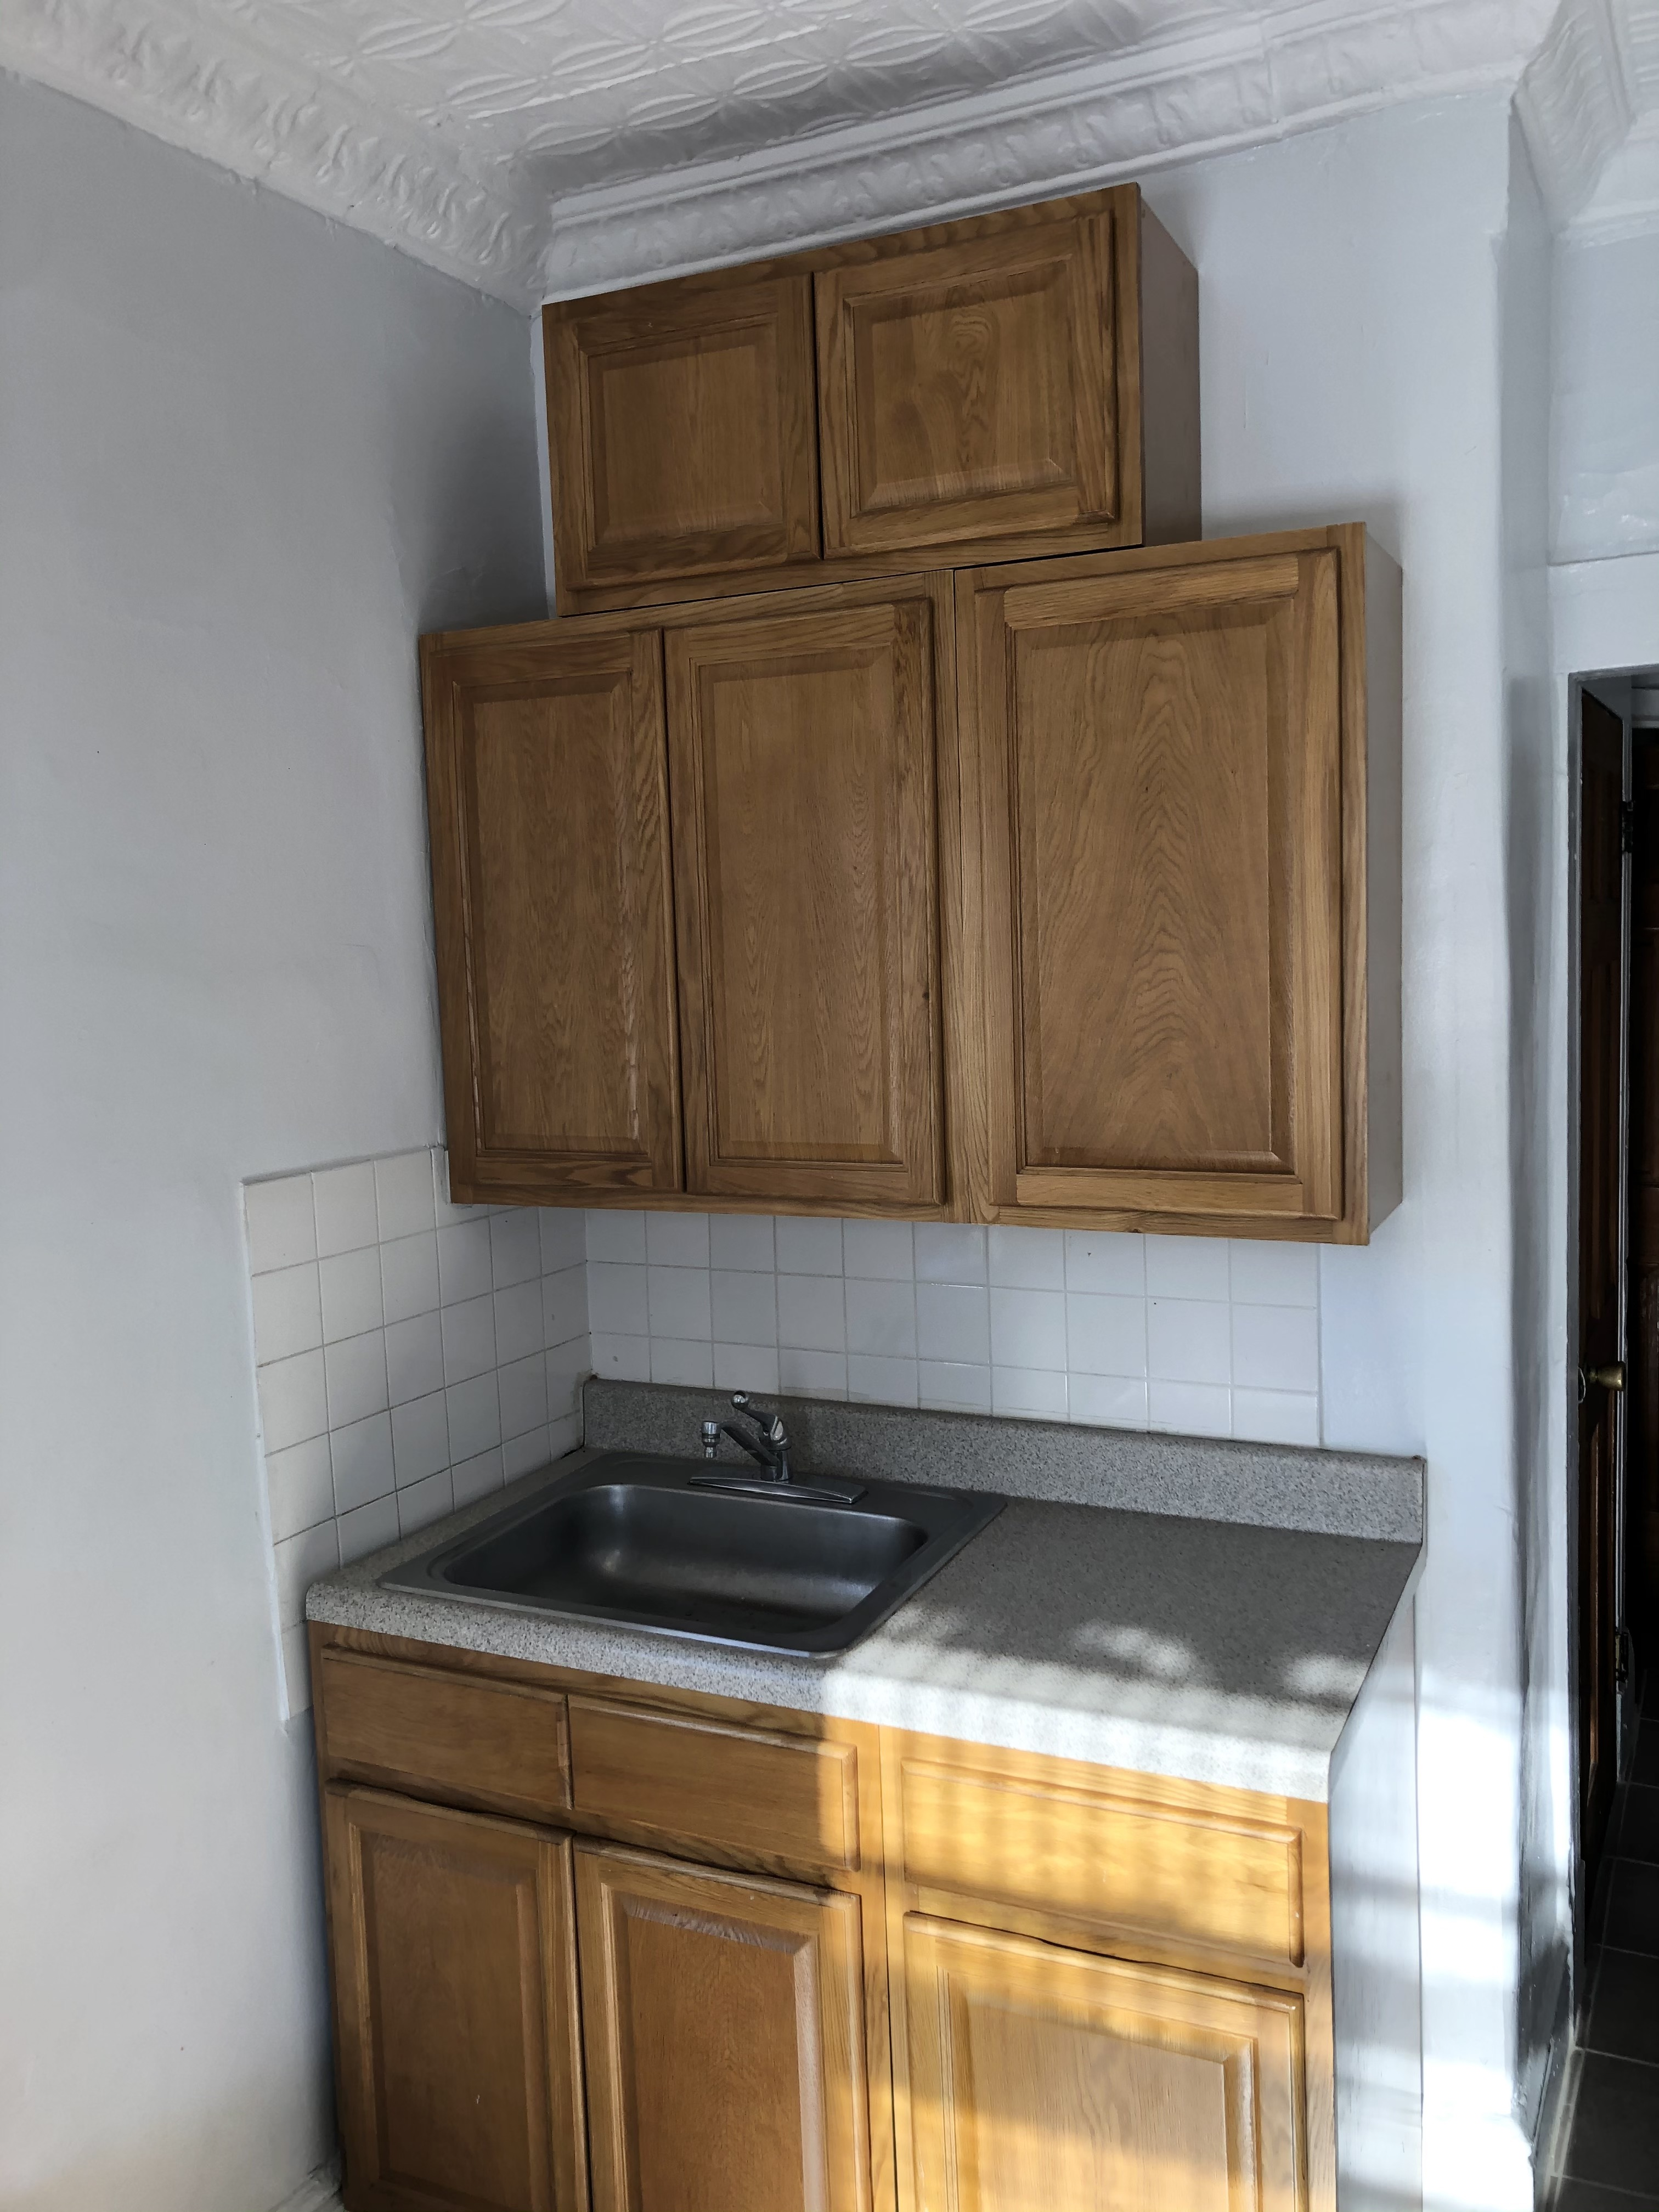 108-52 50th Avenue 2R Elmhurst Queens NY 11368